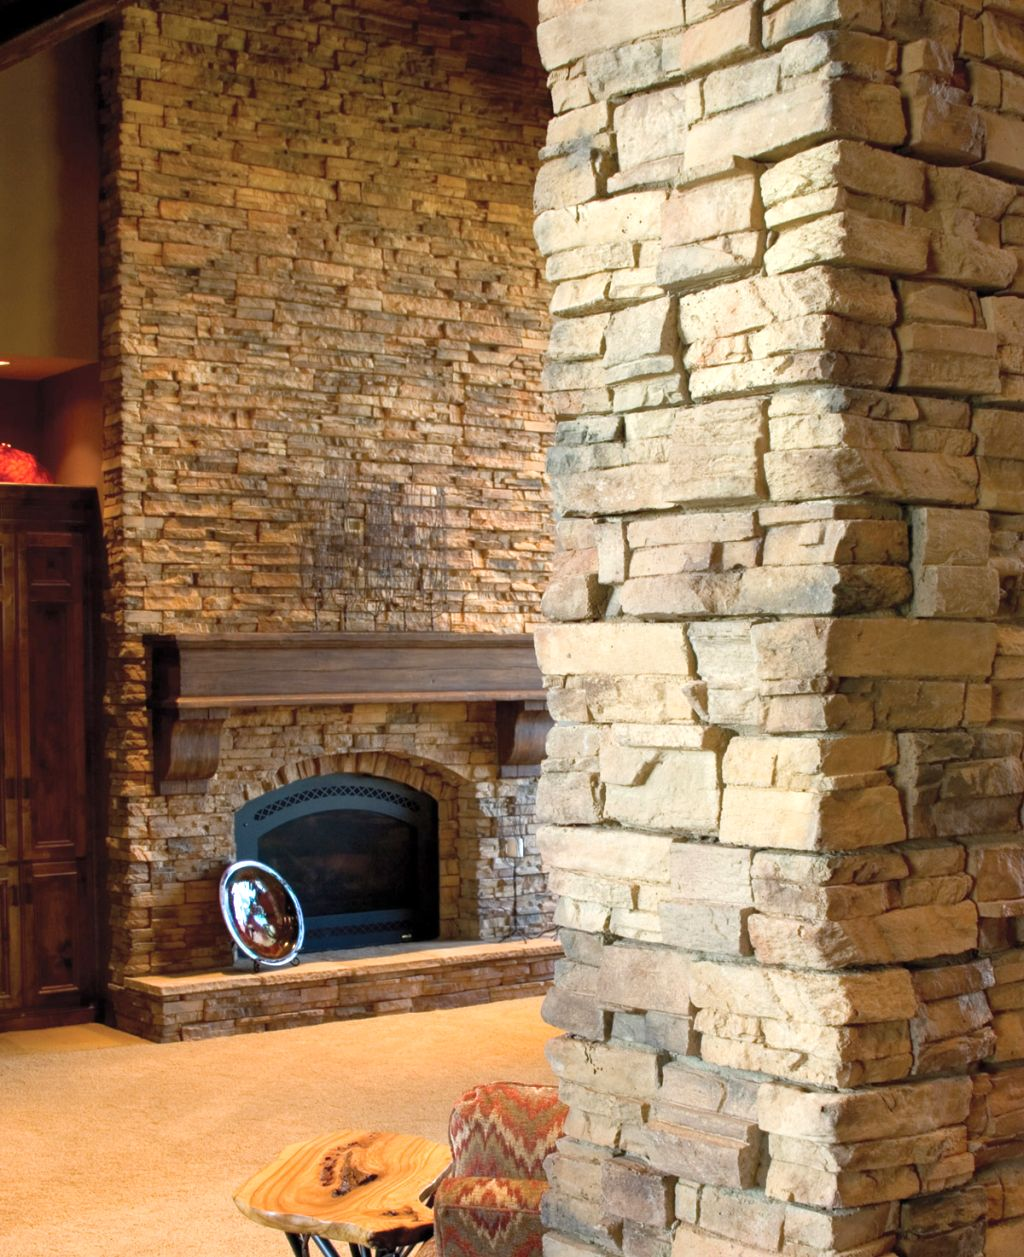 stack stone fireplaces behind the pillar